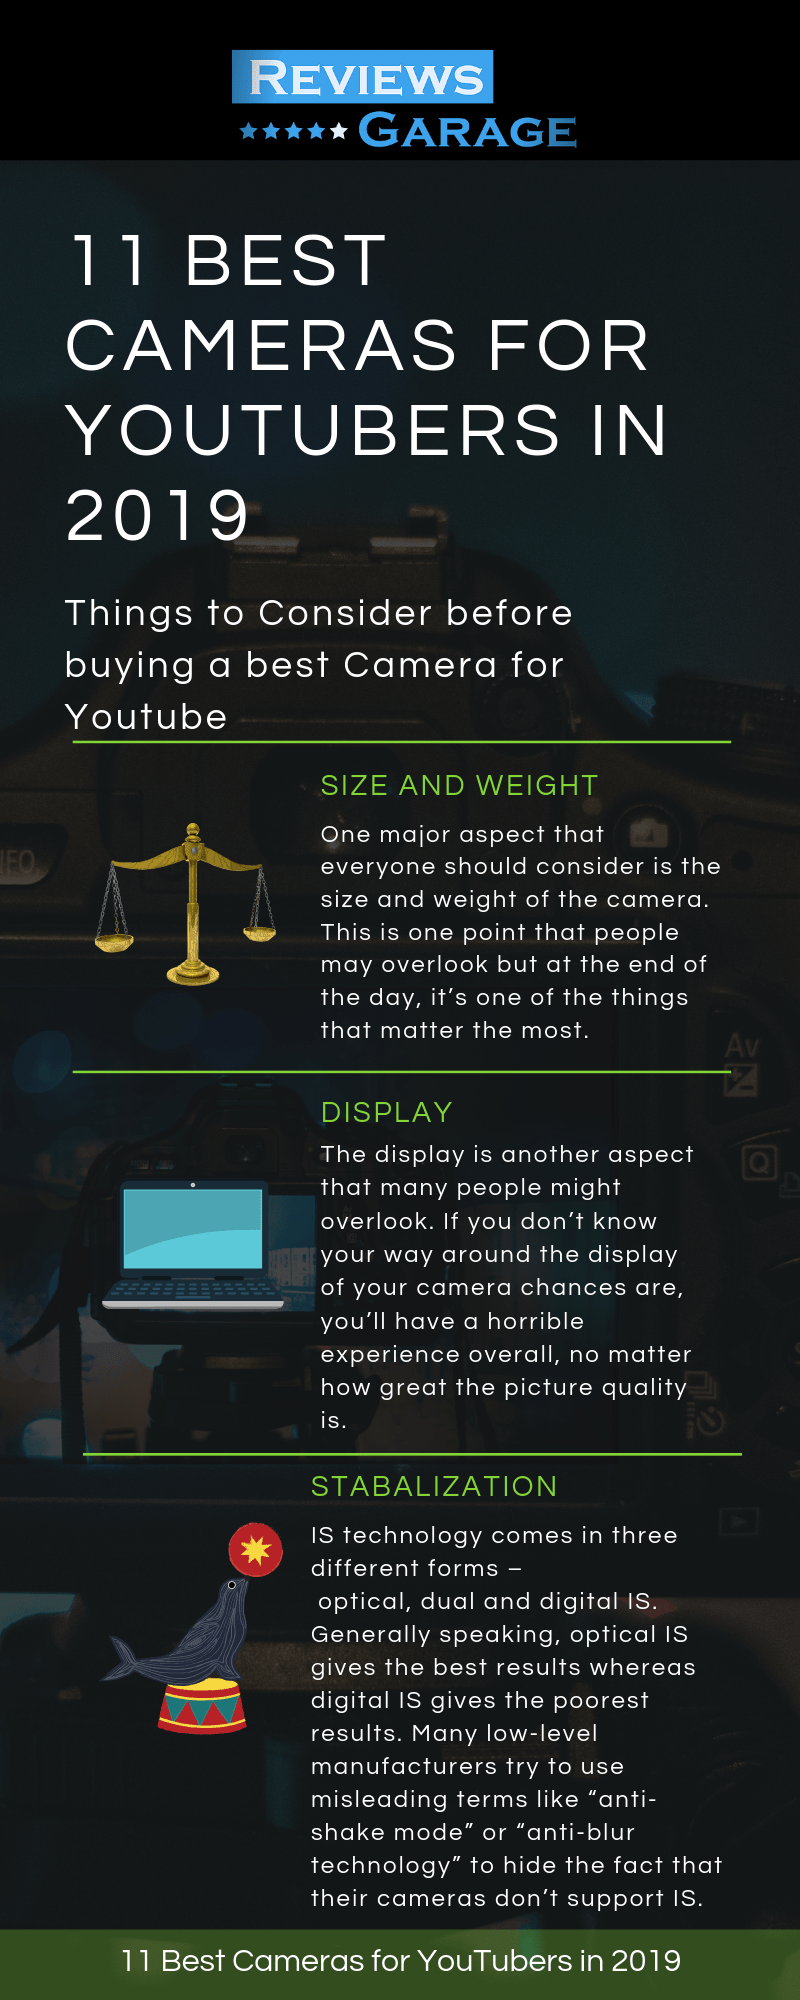 Things to Consider before buying the best Camera for Youtube